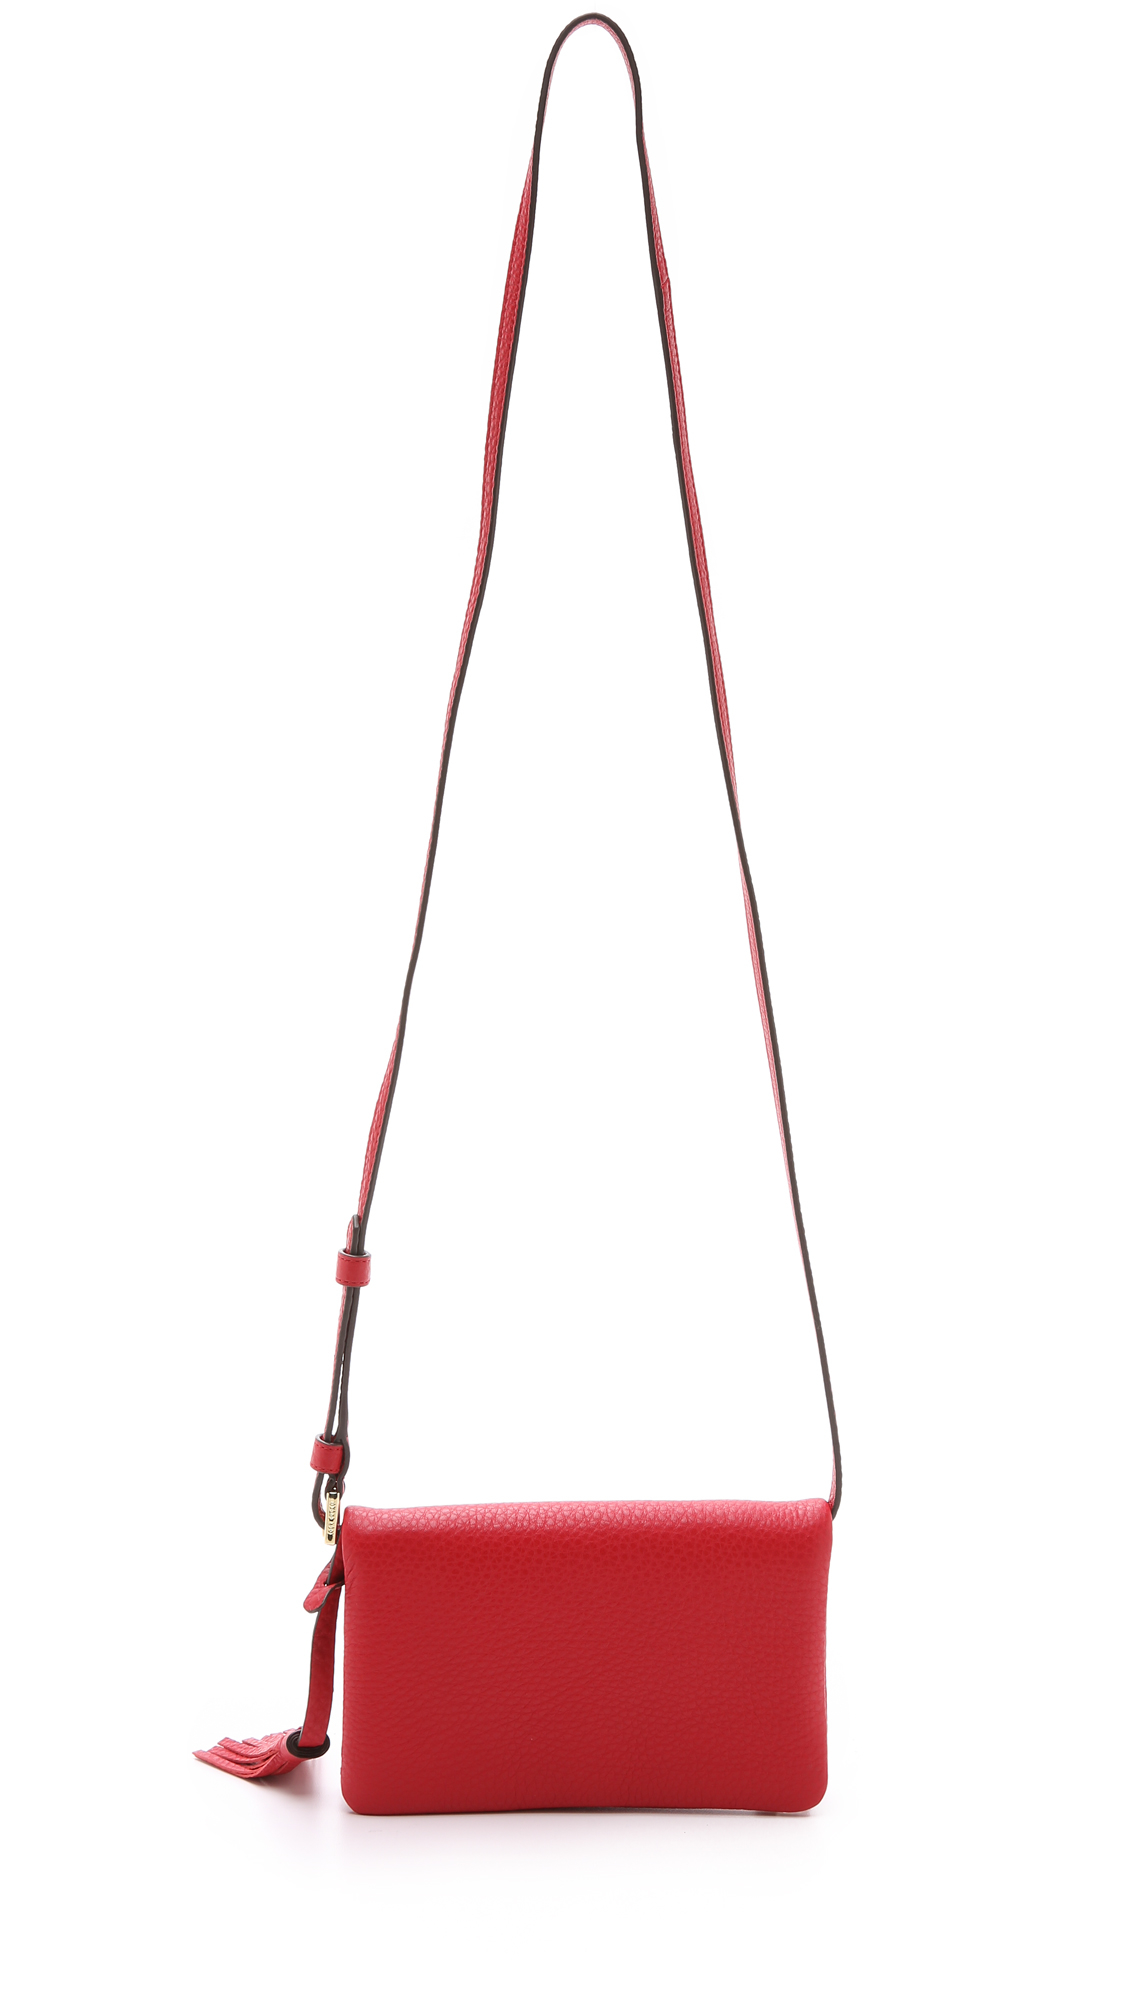 Tory burch Robinson Mini Fold Over Bag - Tiger's Eye in Red | Lyst